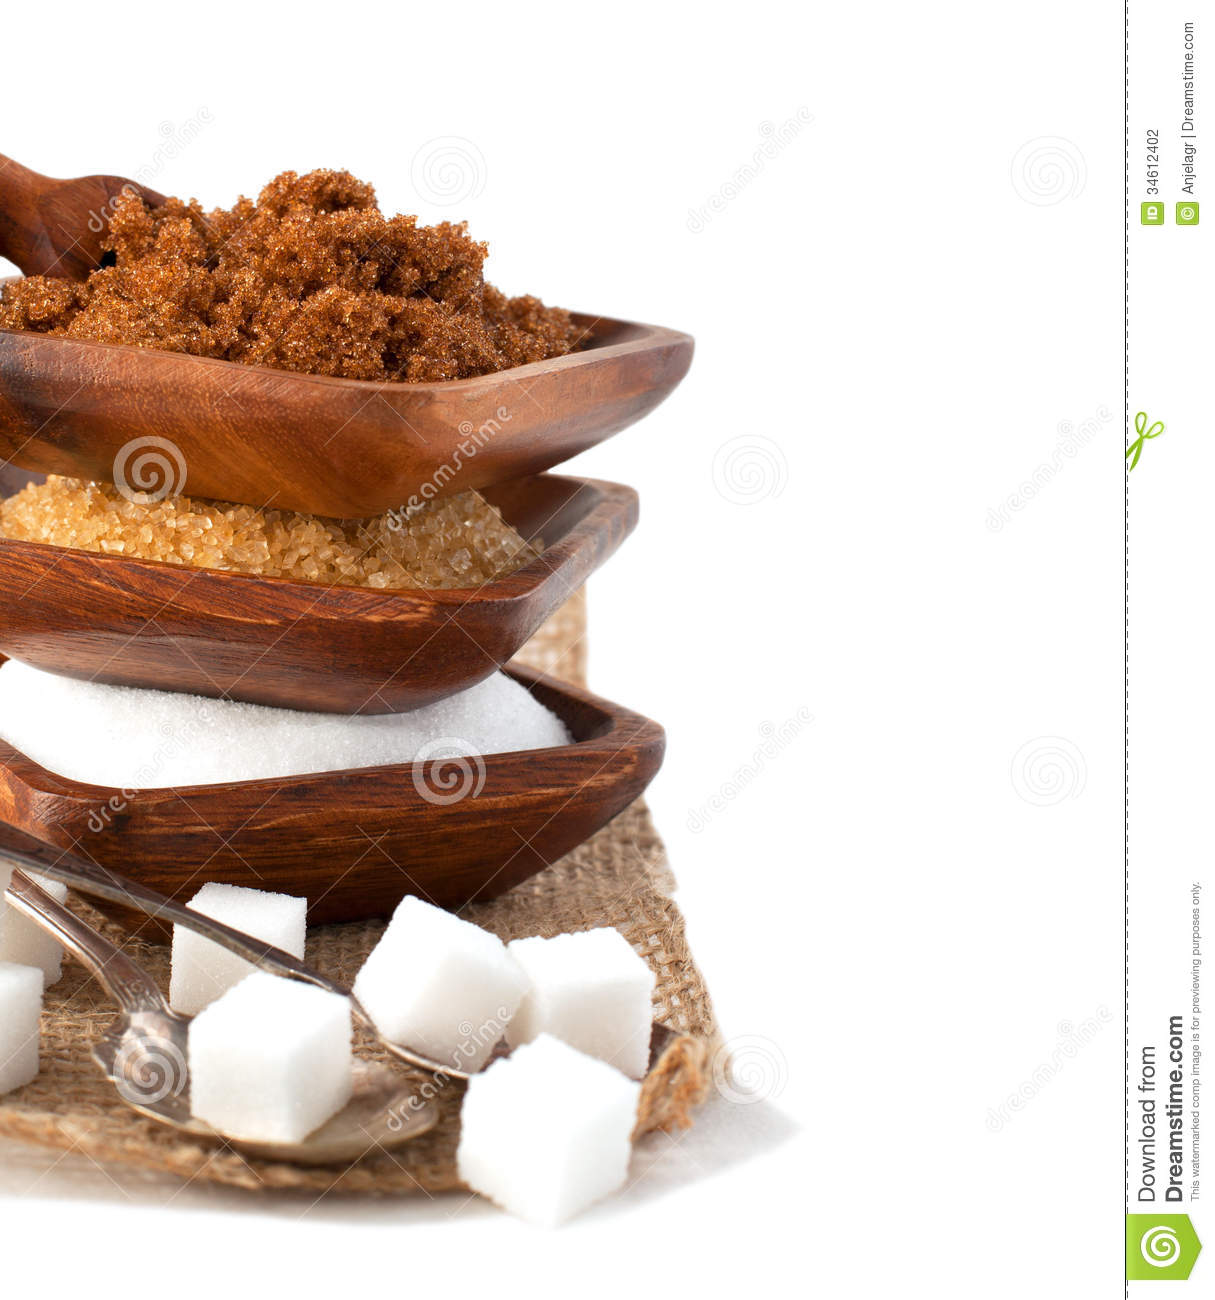 Different Types Of Sugar Demerara Brown And White Stock